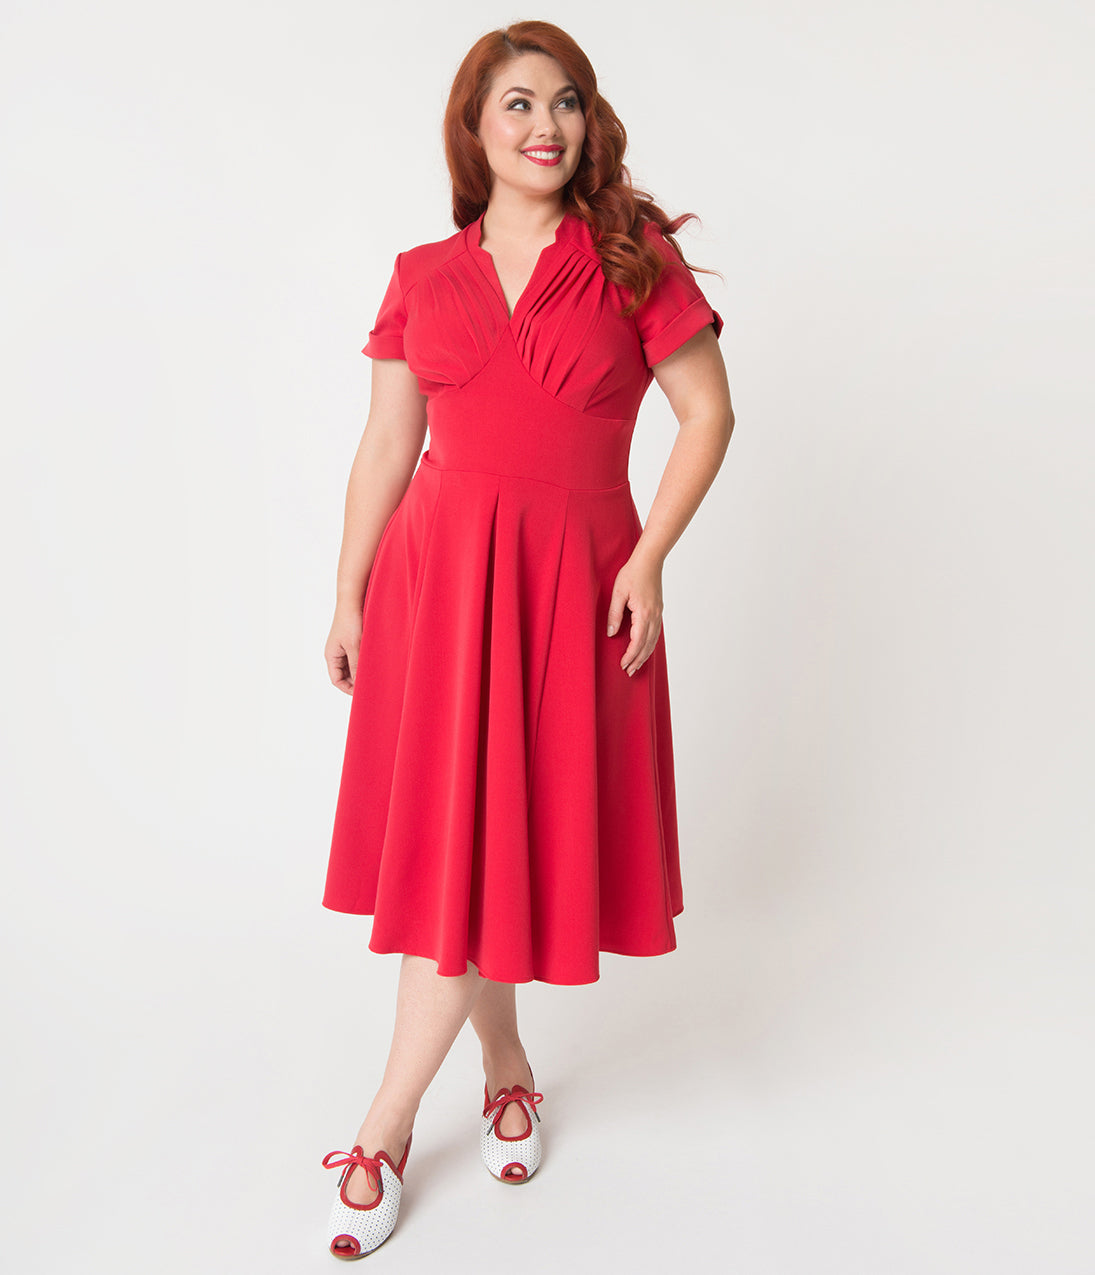 500 Vintage Style Dresses for Sale Miss Candy Floss Plus Size 1950S Style Red Sleeved Elena-Rose Swing Dress $118.00 AT vintagedancer.com